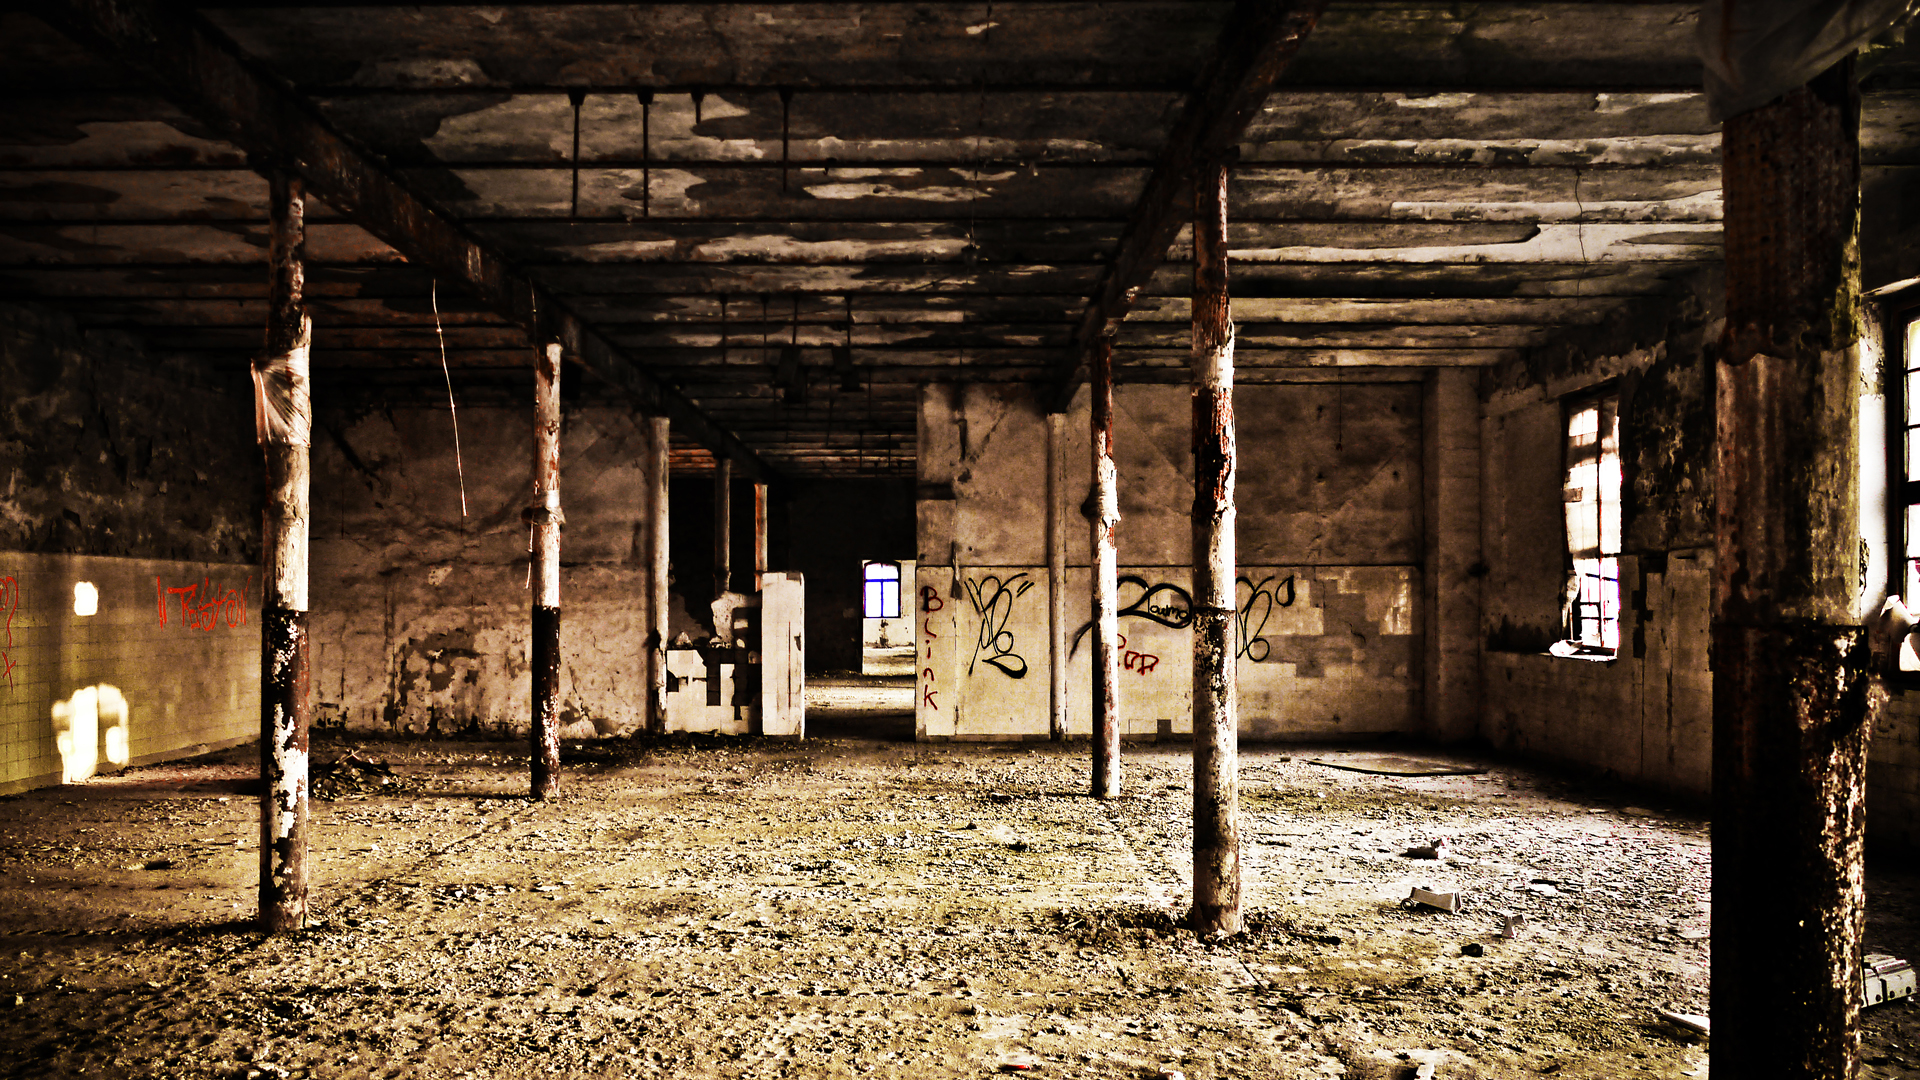 Old Warehouse Wallpaper 1920x1080 33895